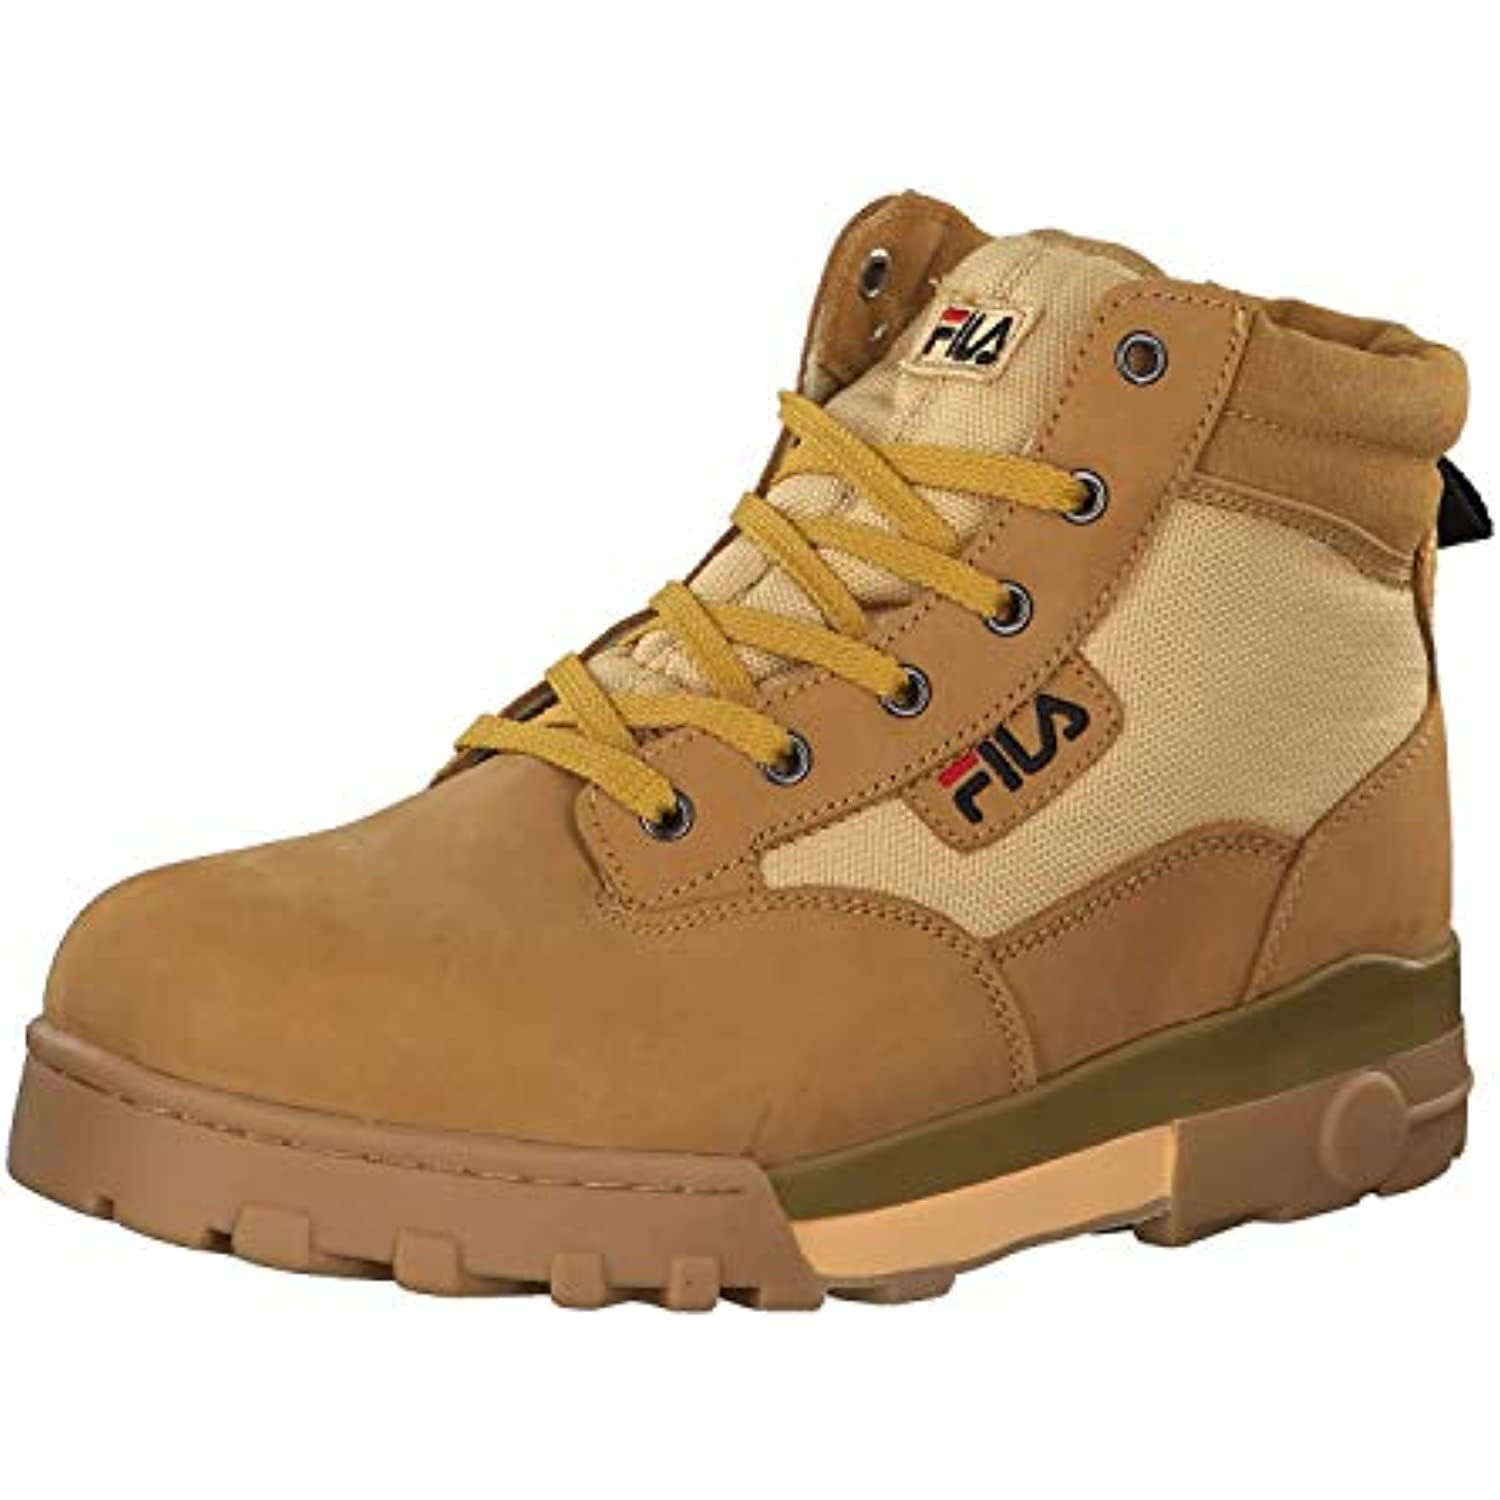 Fila Homme Chaussures/Chaussures Montantes Heritage Grunge L Mid B07HDQGKN4 - B07HDQGKN4 Mid - c6493d